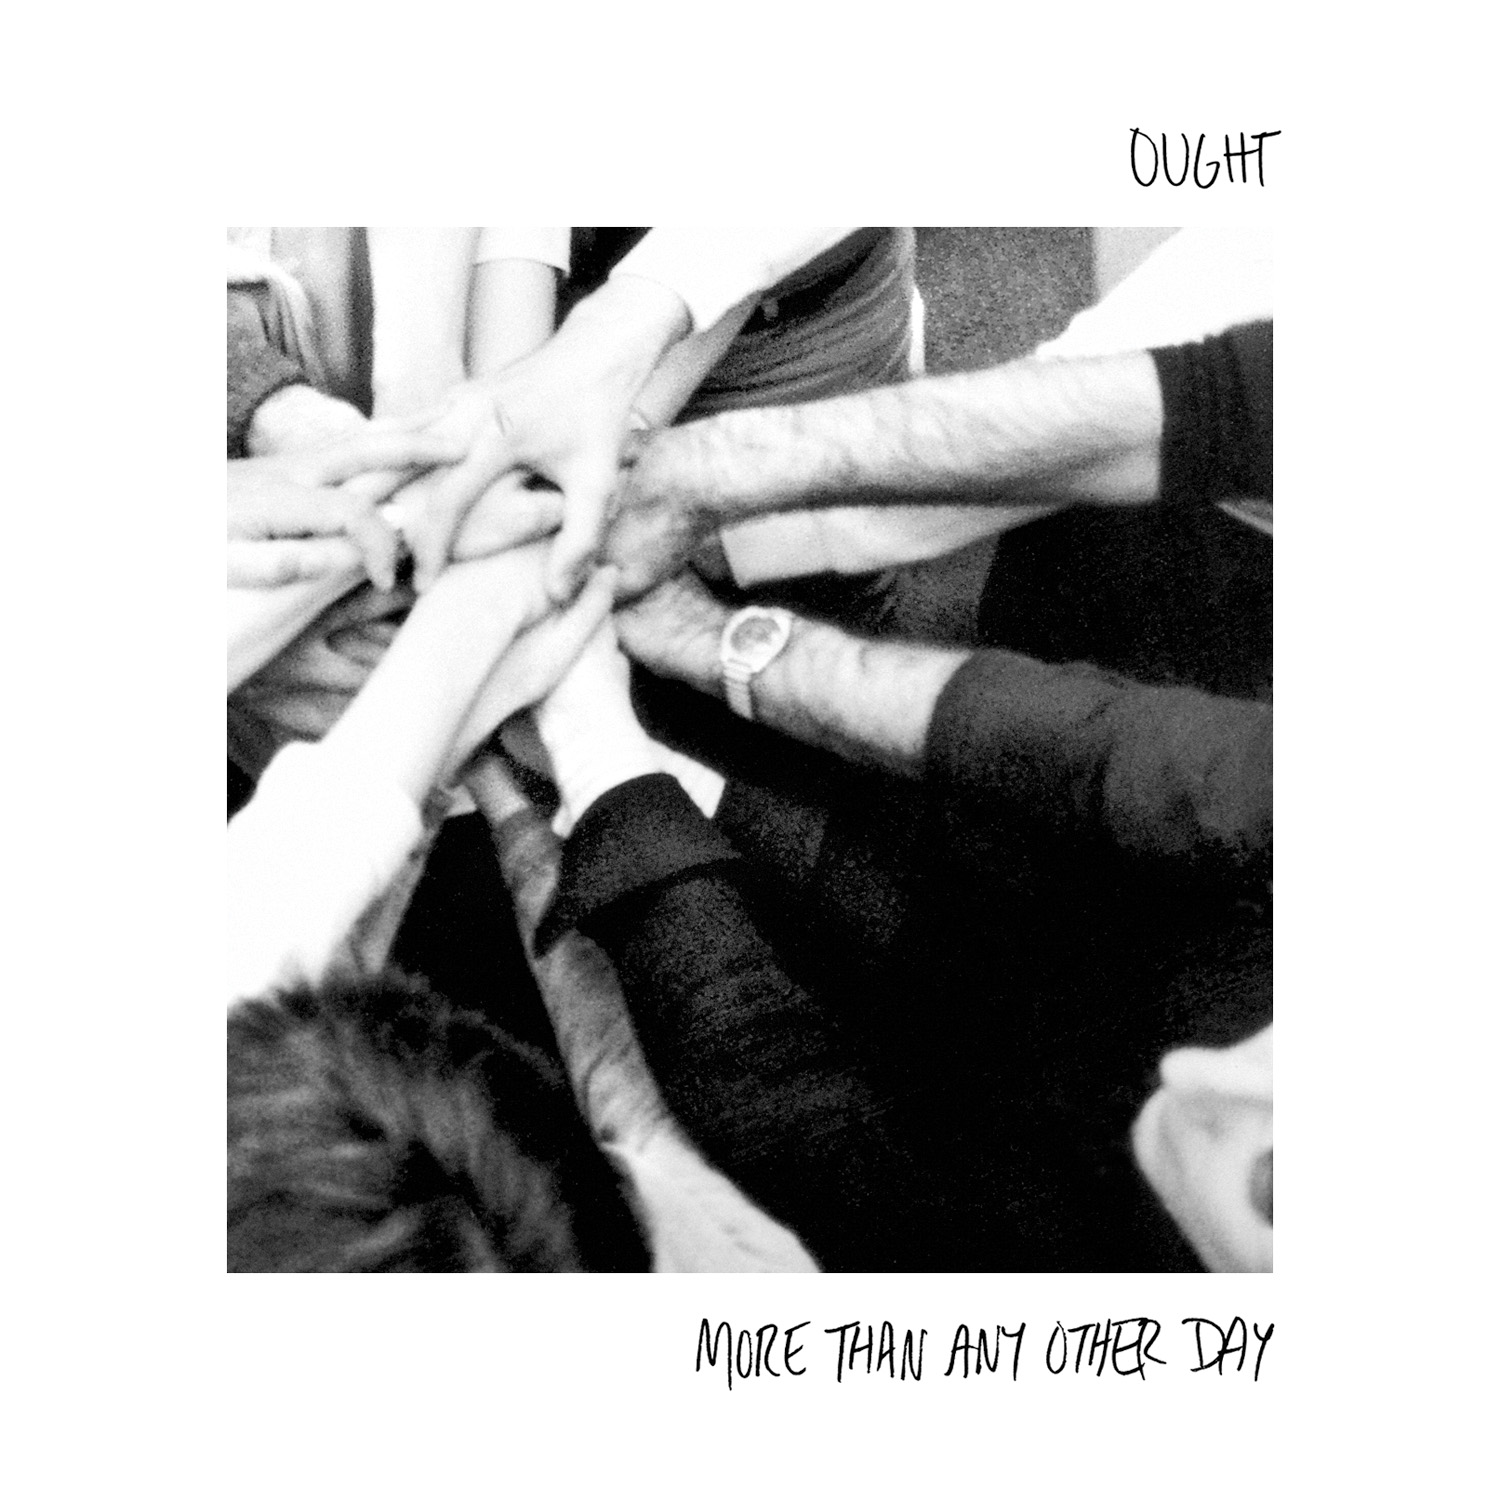 Ought - More Than Any Other Day - By Volume